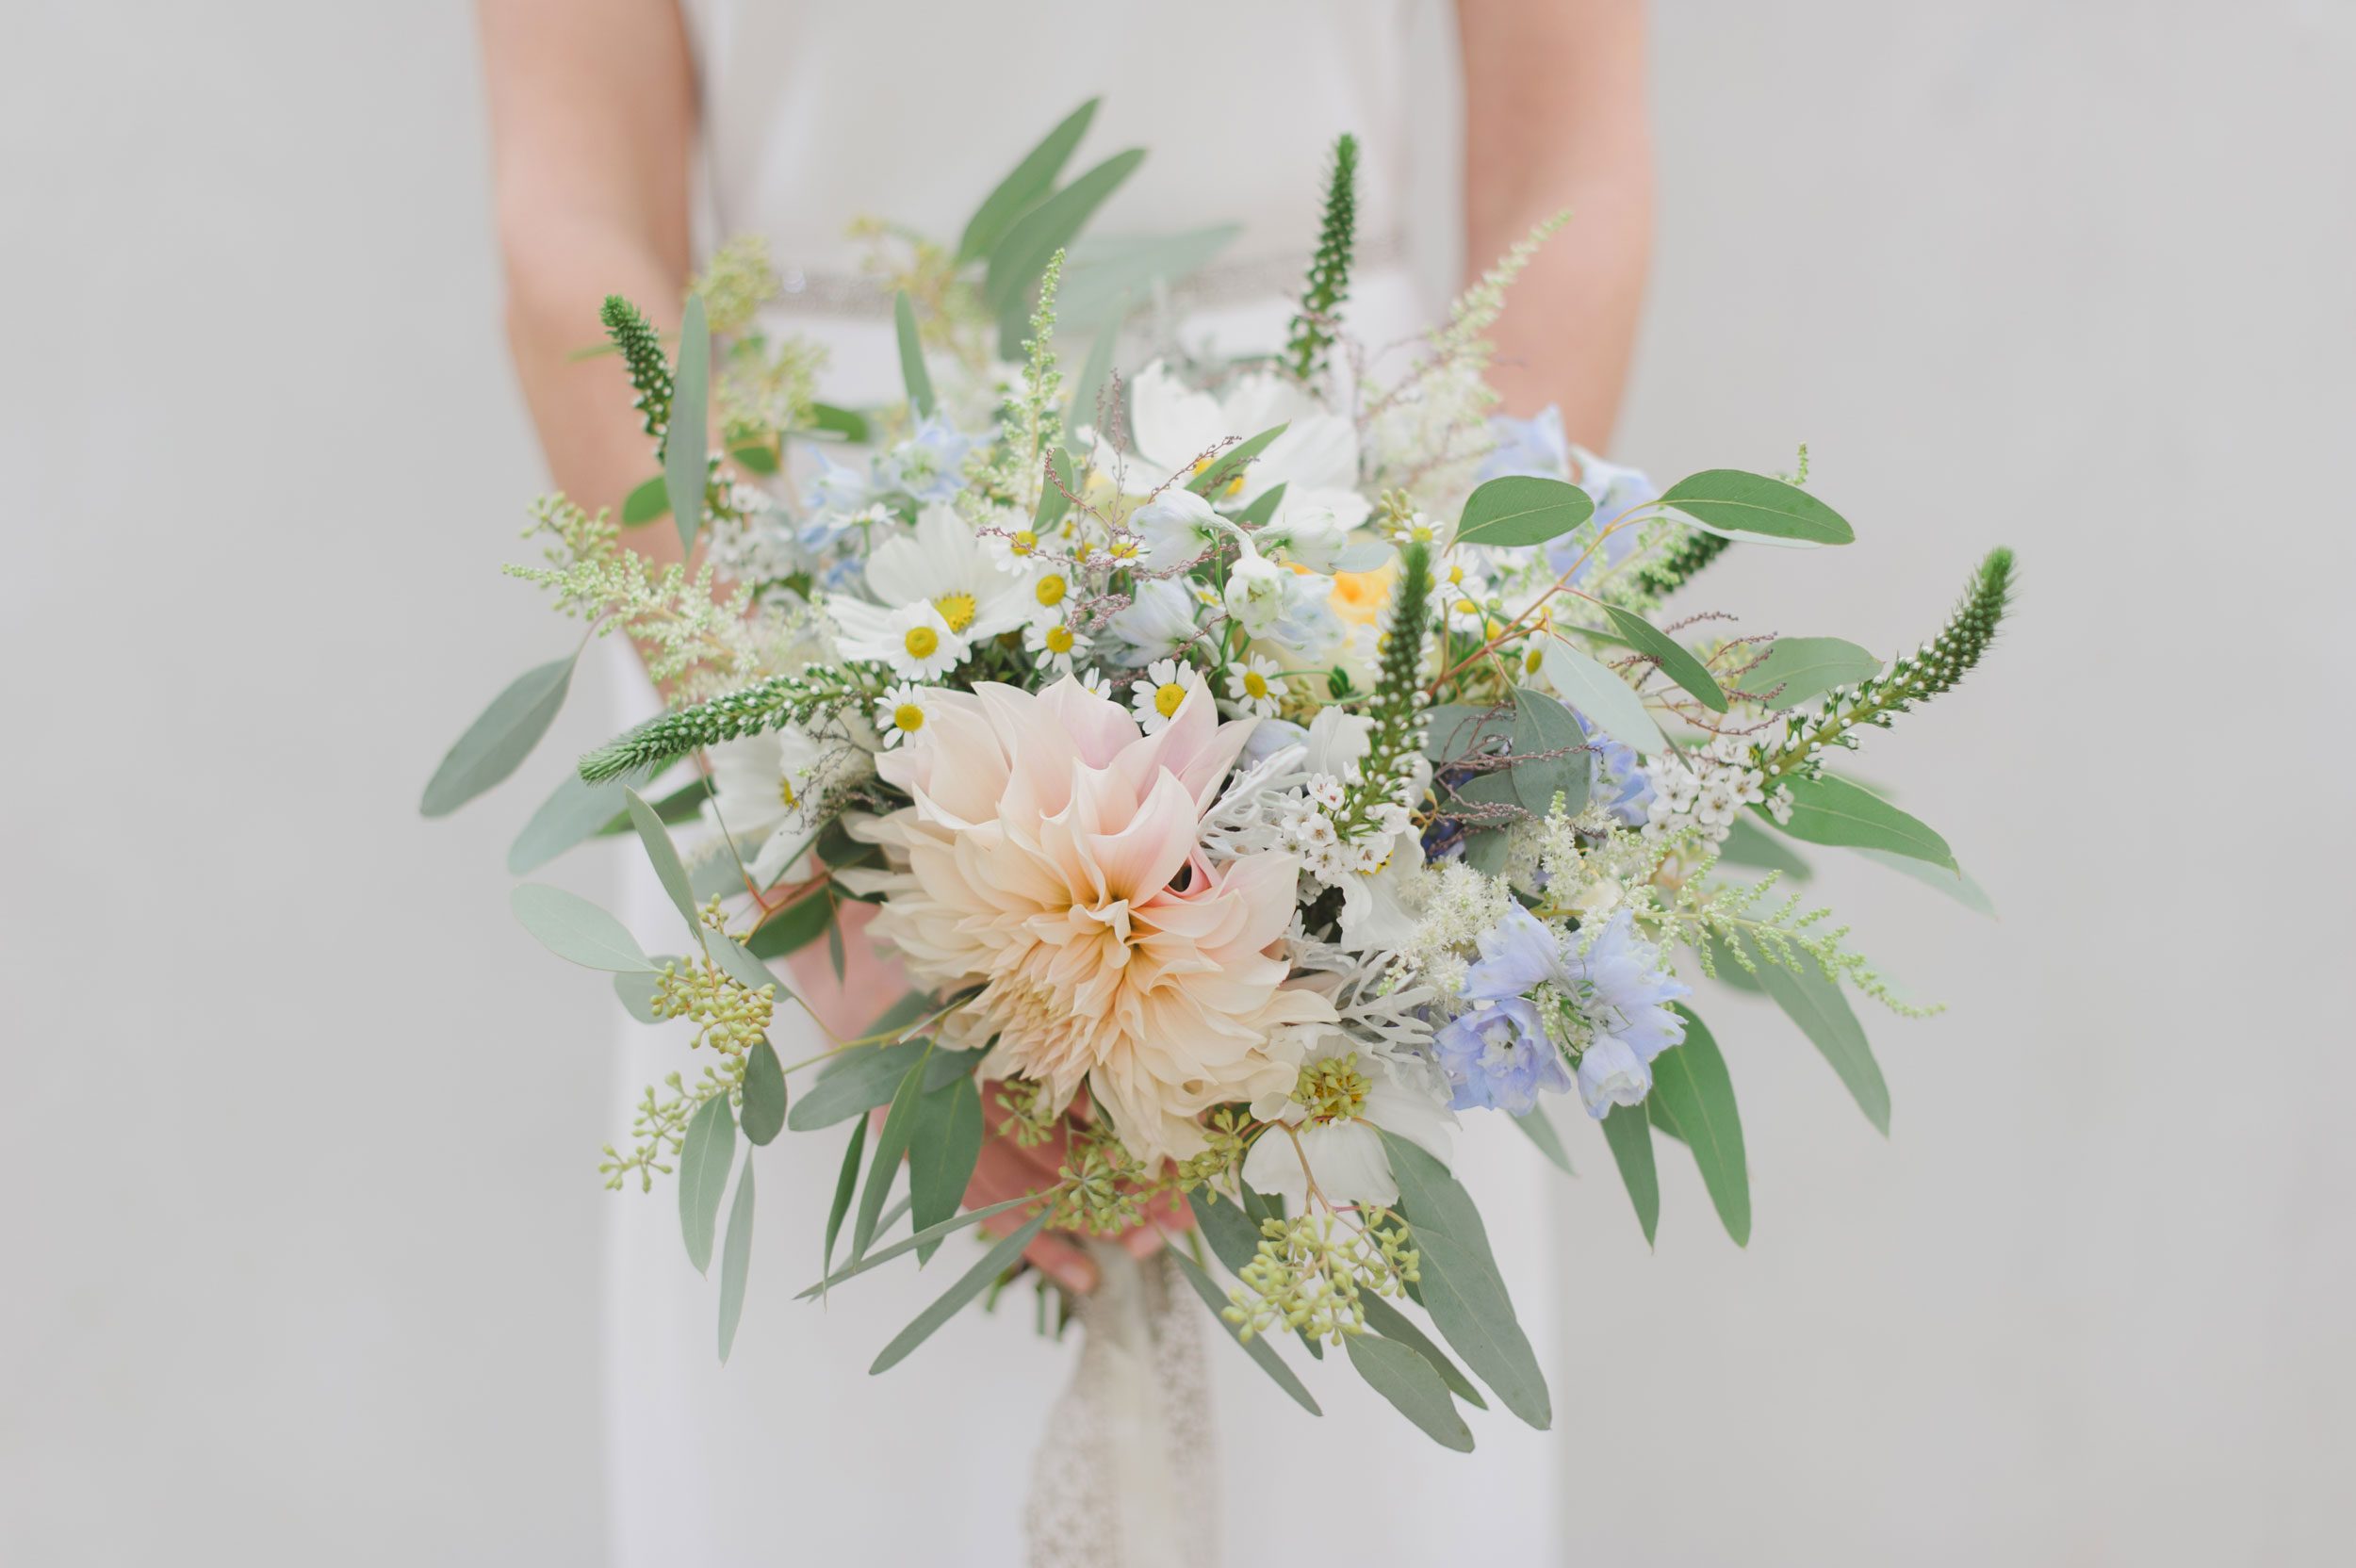 Romantic wedding bouquet in pastel colors